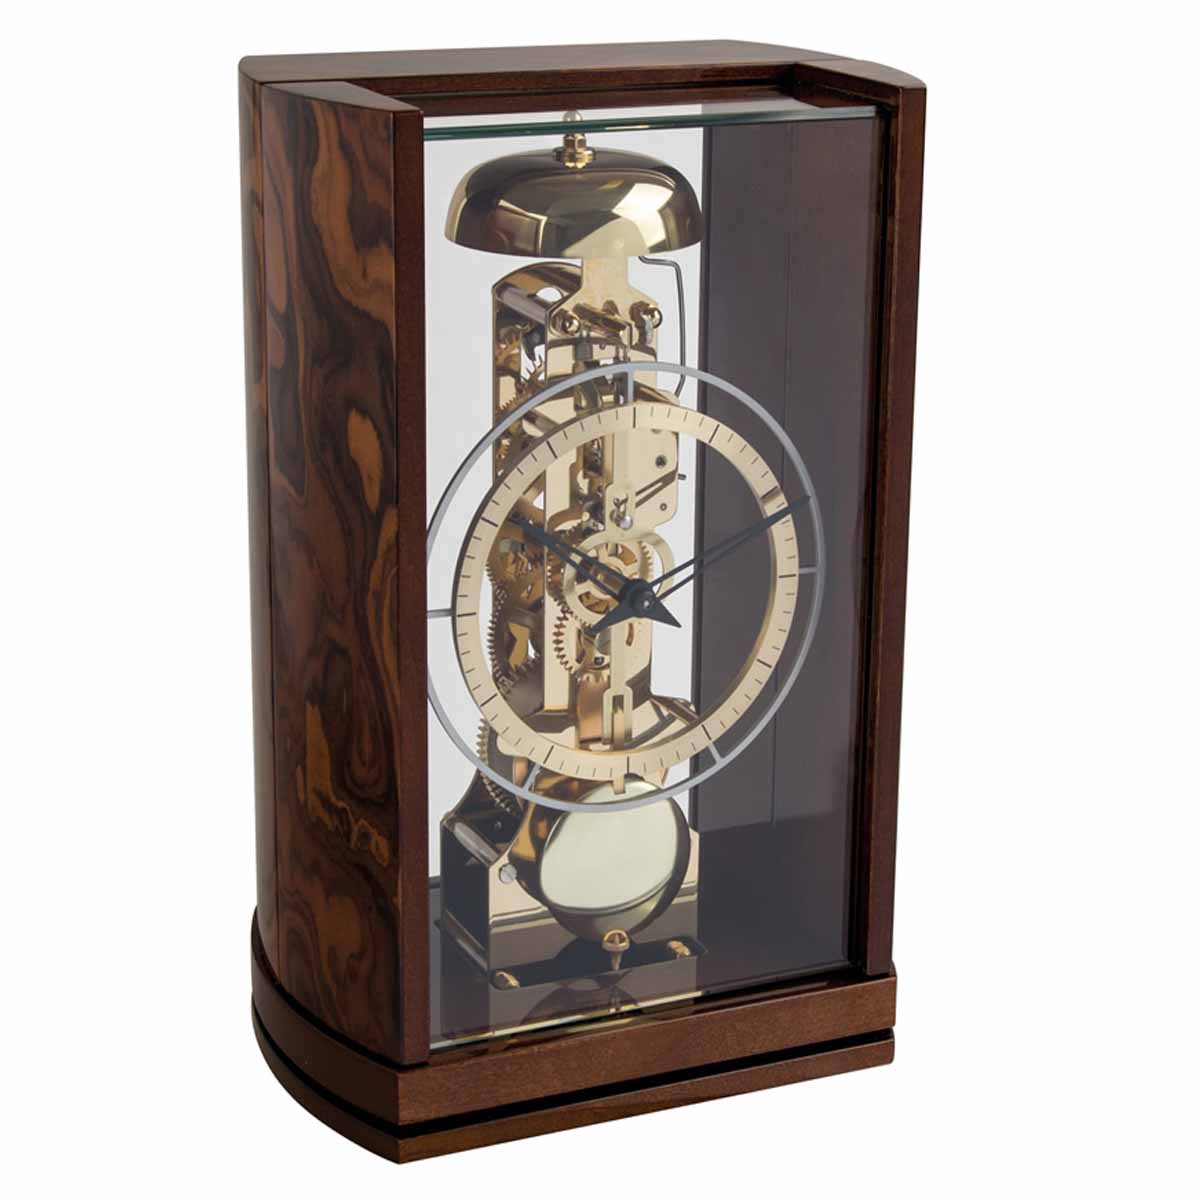 MORLEY 23050-R50791 California Burr Table Clock